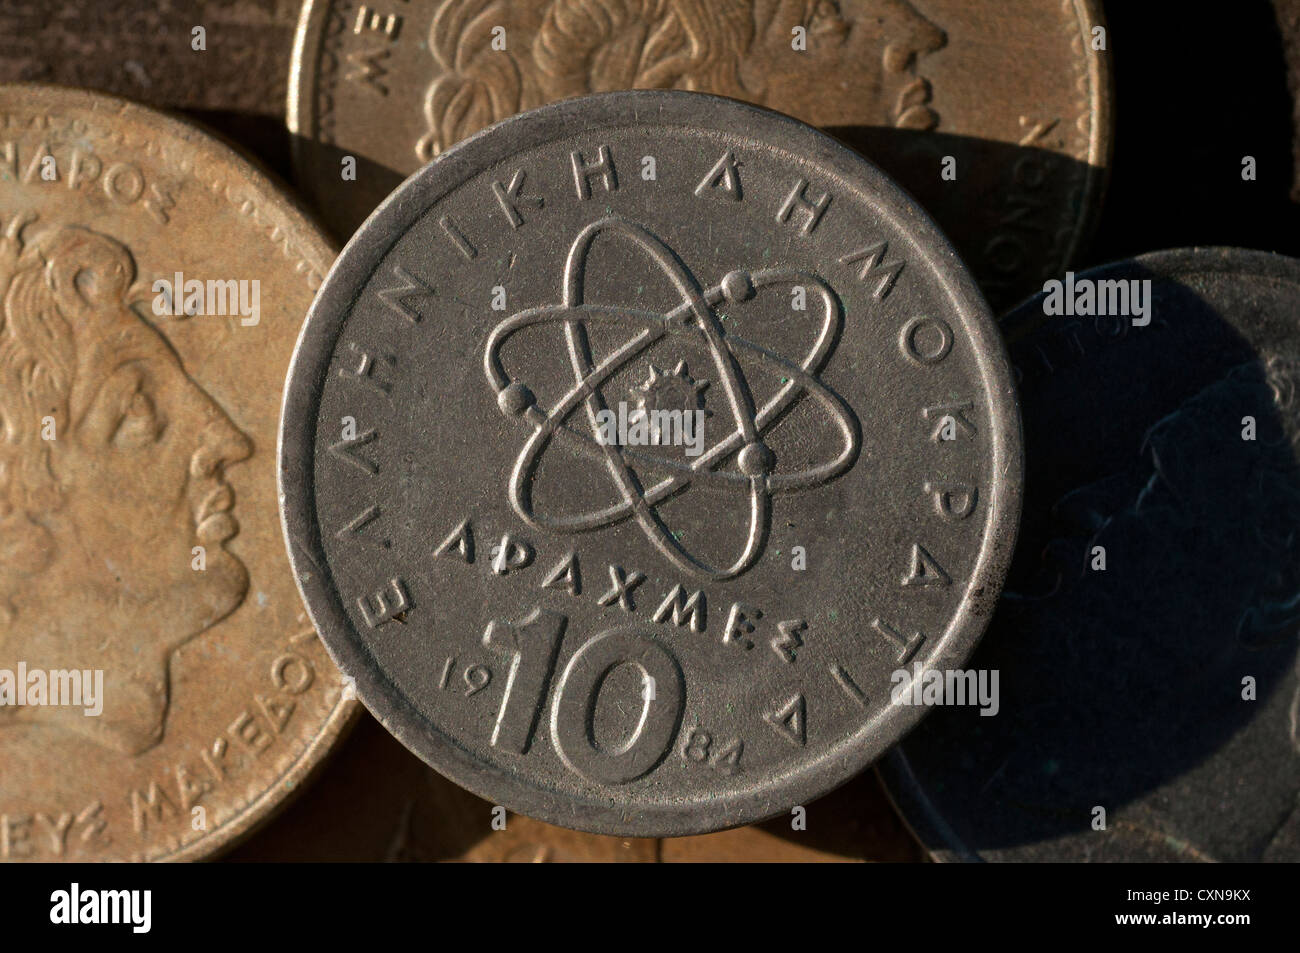 Greek Drachma coins, Greece - Stock Image